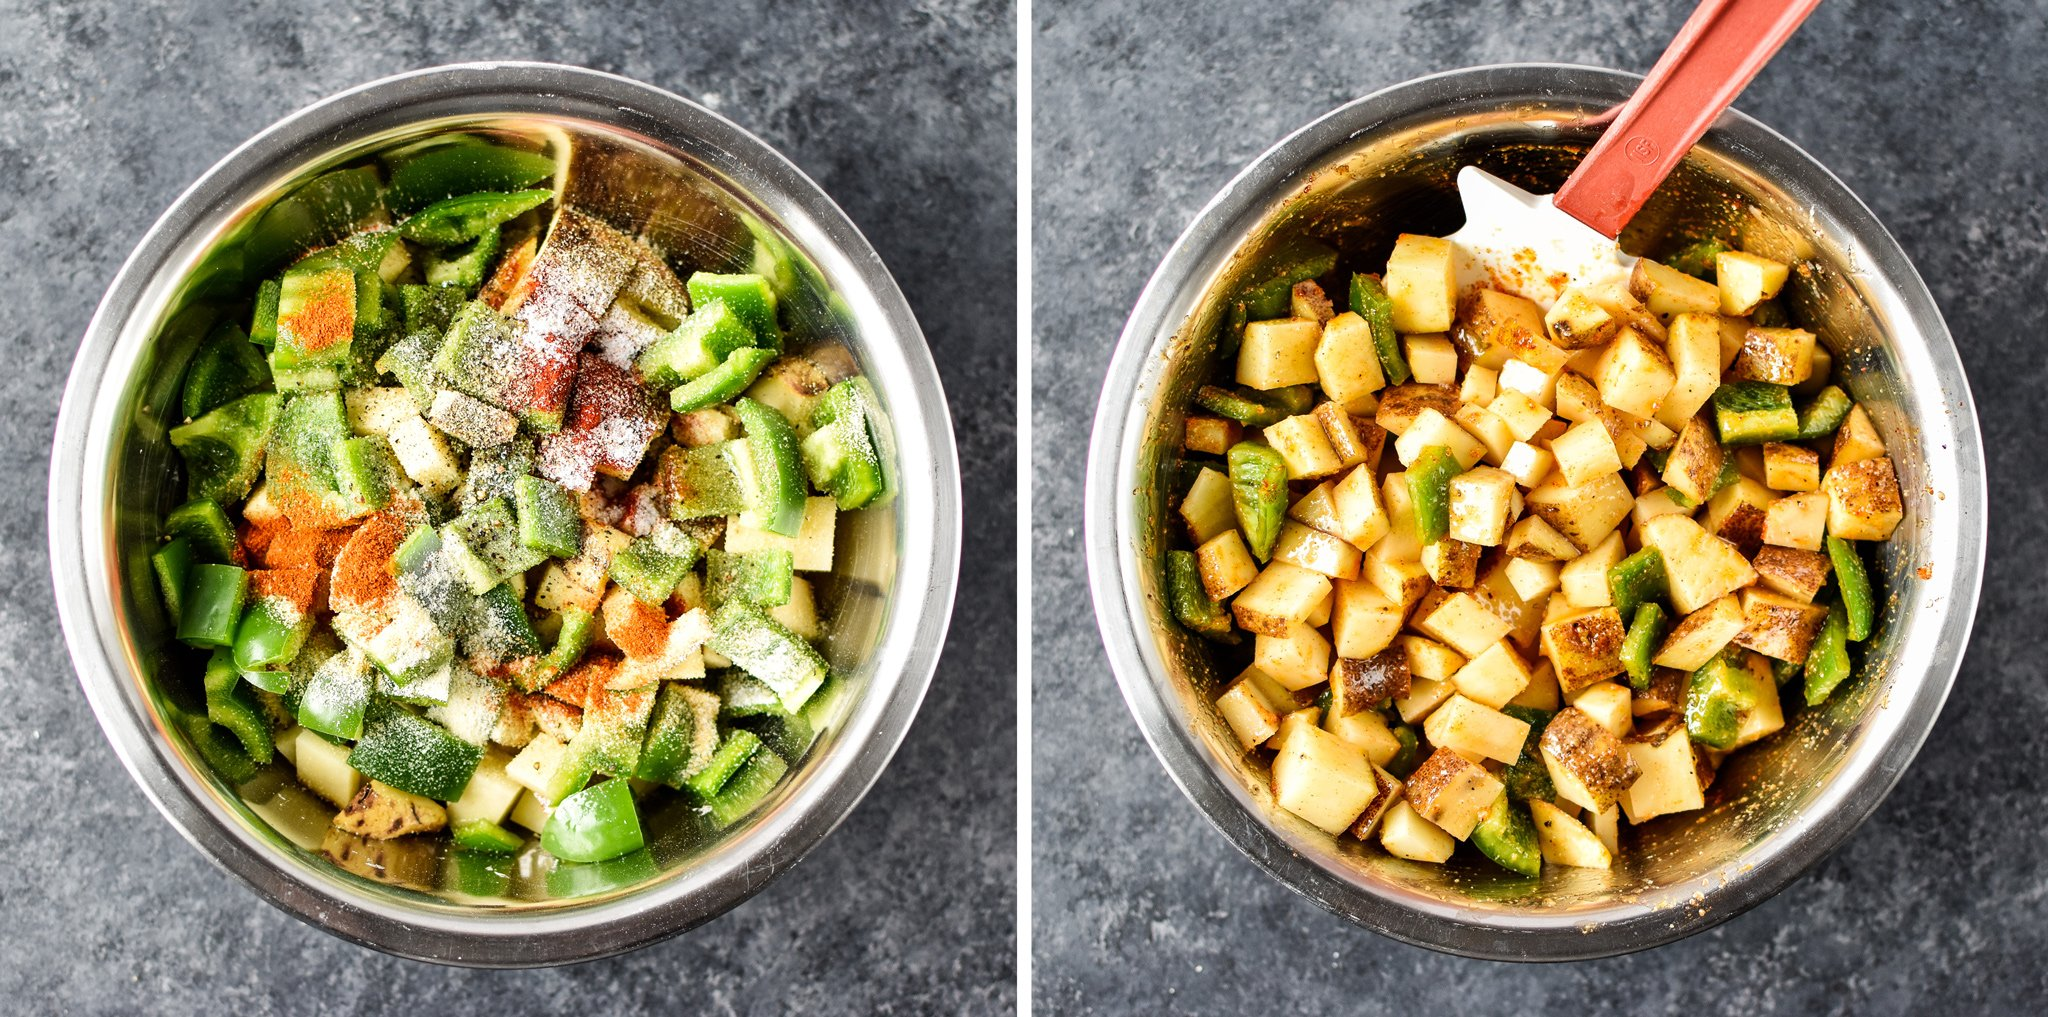 Left: A bowl of peppers and breakfast potatoes with seasonings on top. Right: The same bowl stirred up and ready to be cooked.